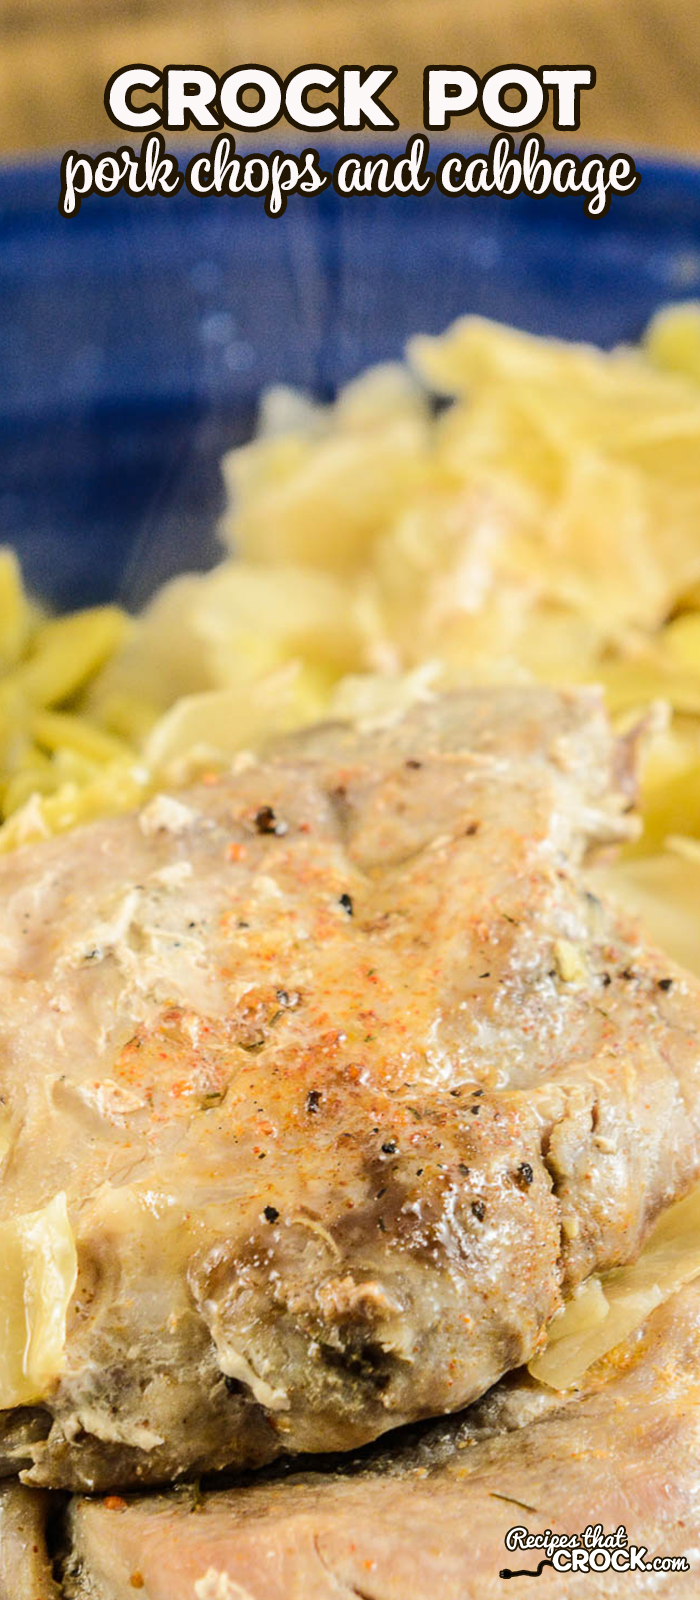 OurCrock Pot Pork Chops and Cabbage is an delicious family meal that is so simple to make with just a handful of ingredients. #LowCarb #CrockPot #FamilyMeal #PorkChops